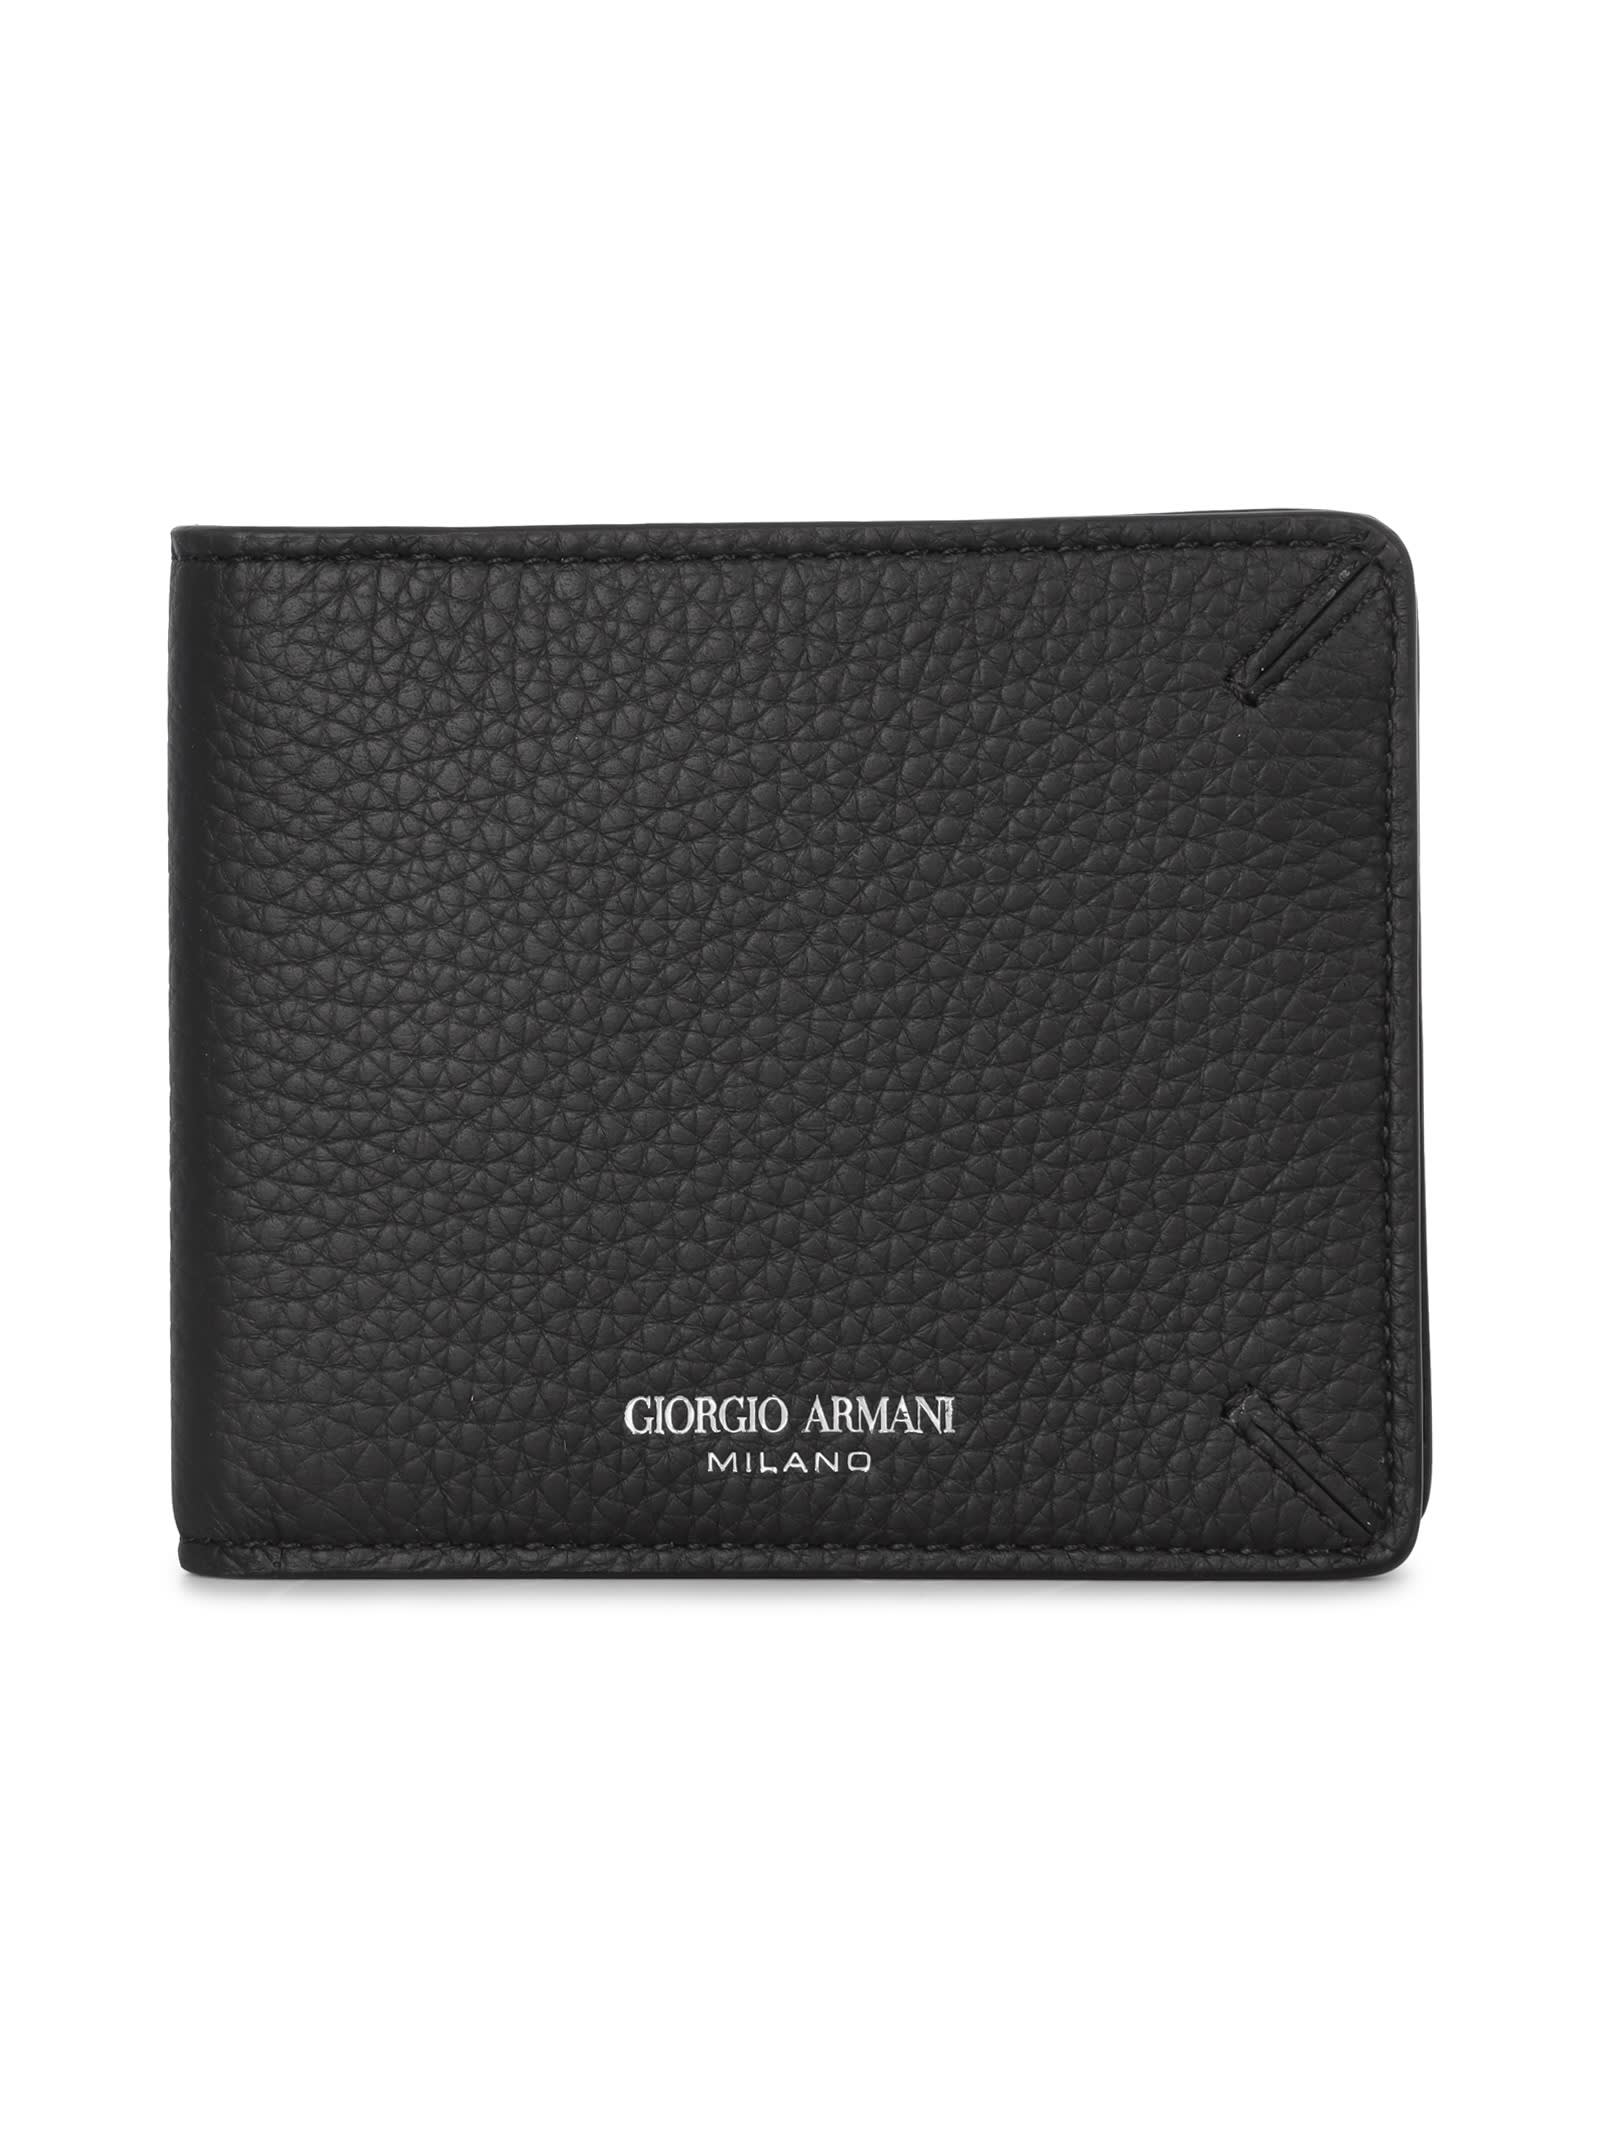 Giorgio Armani Leather Wallet